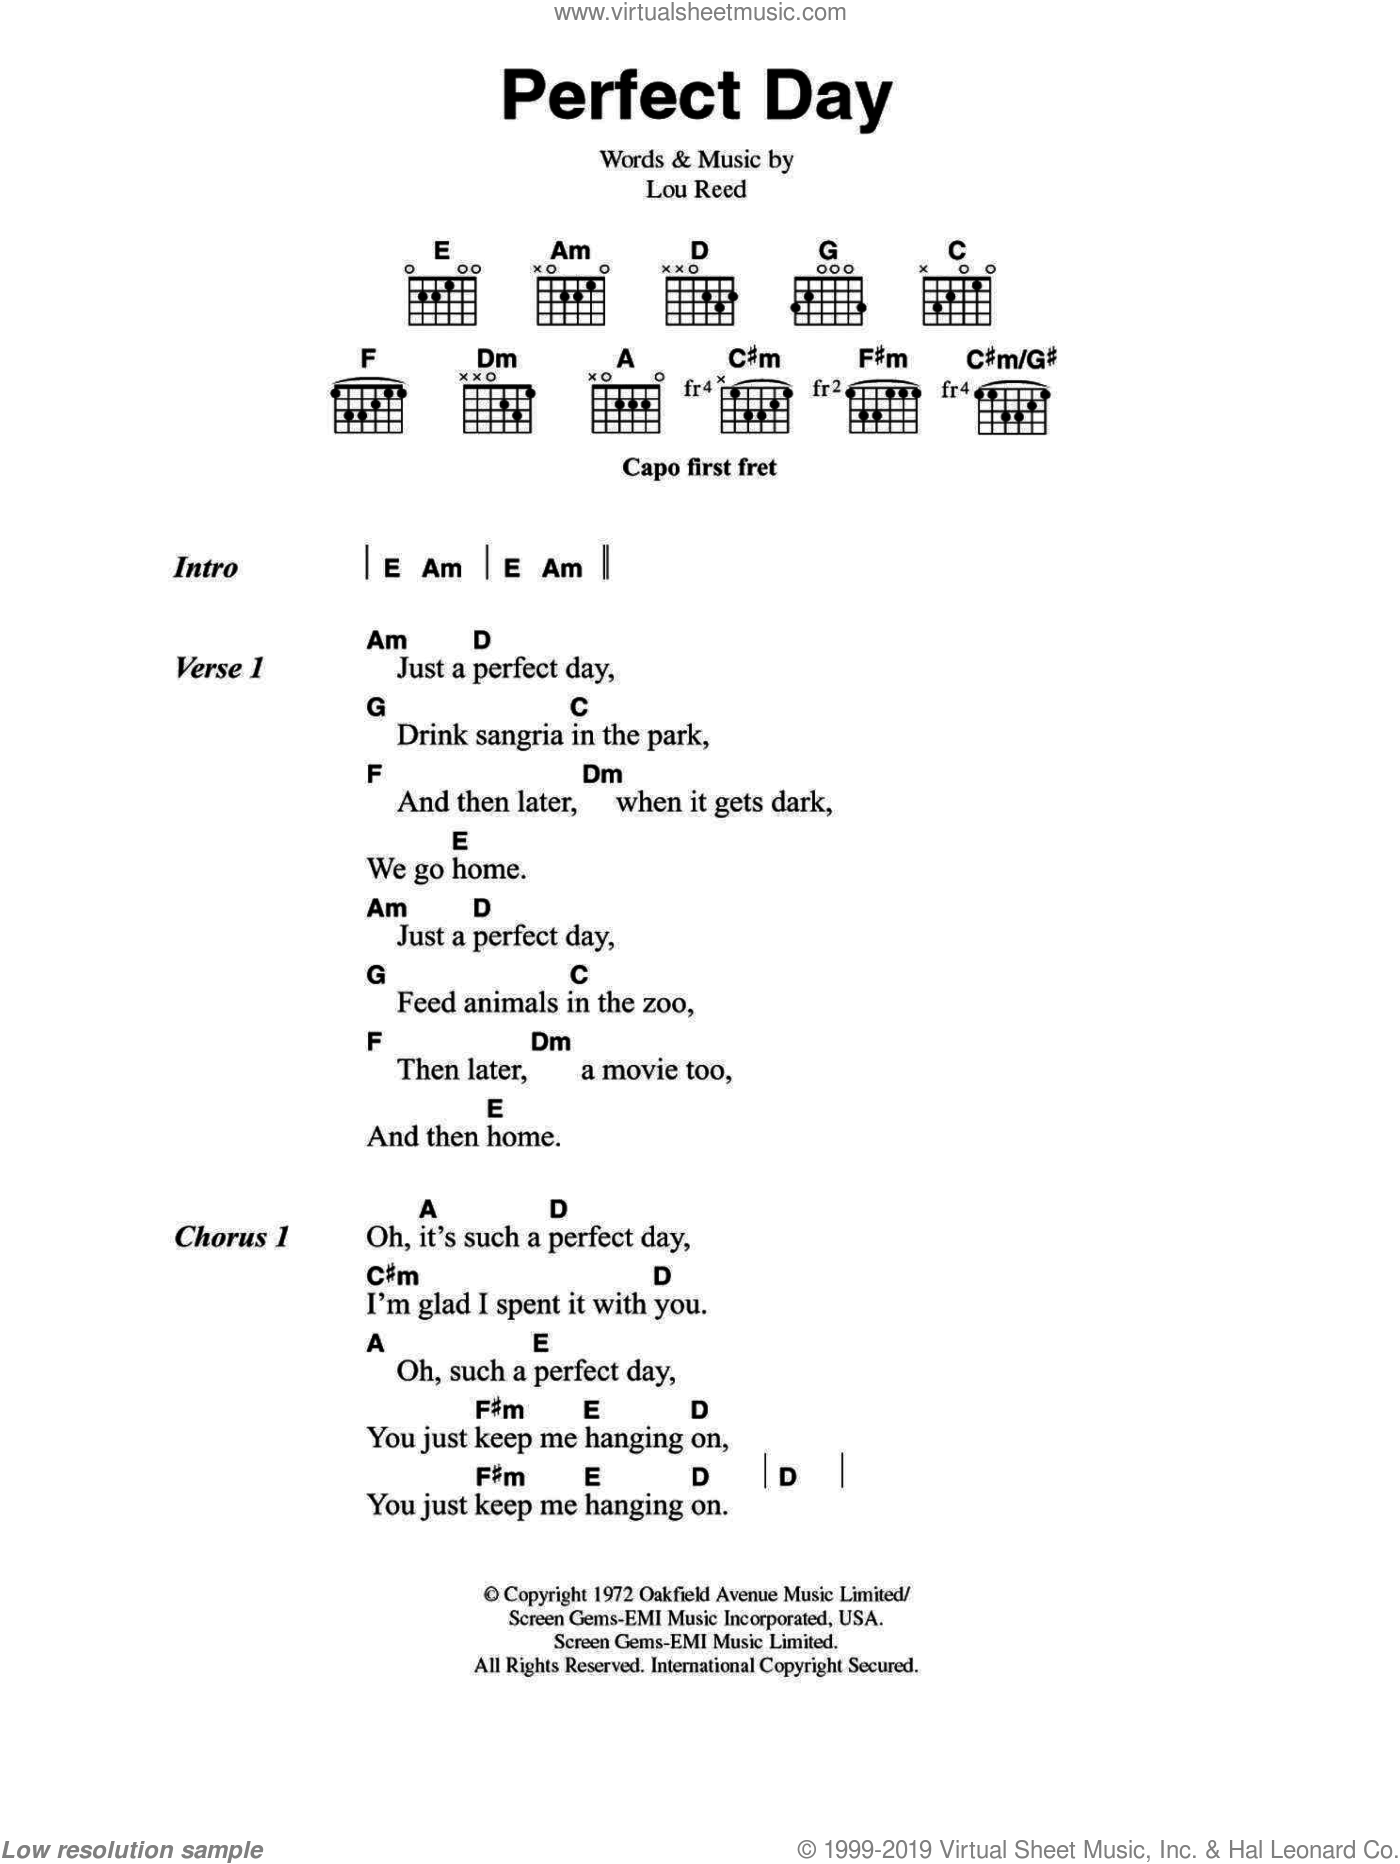 Perfect Day sheet music for guitar (chords) by Lou Reed